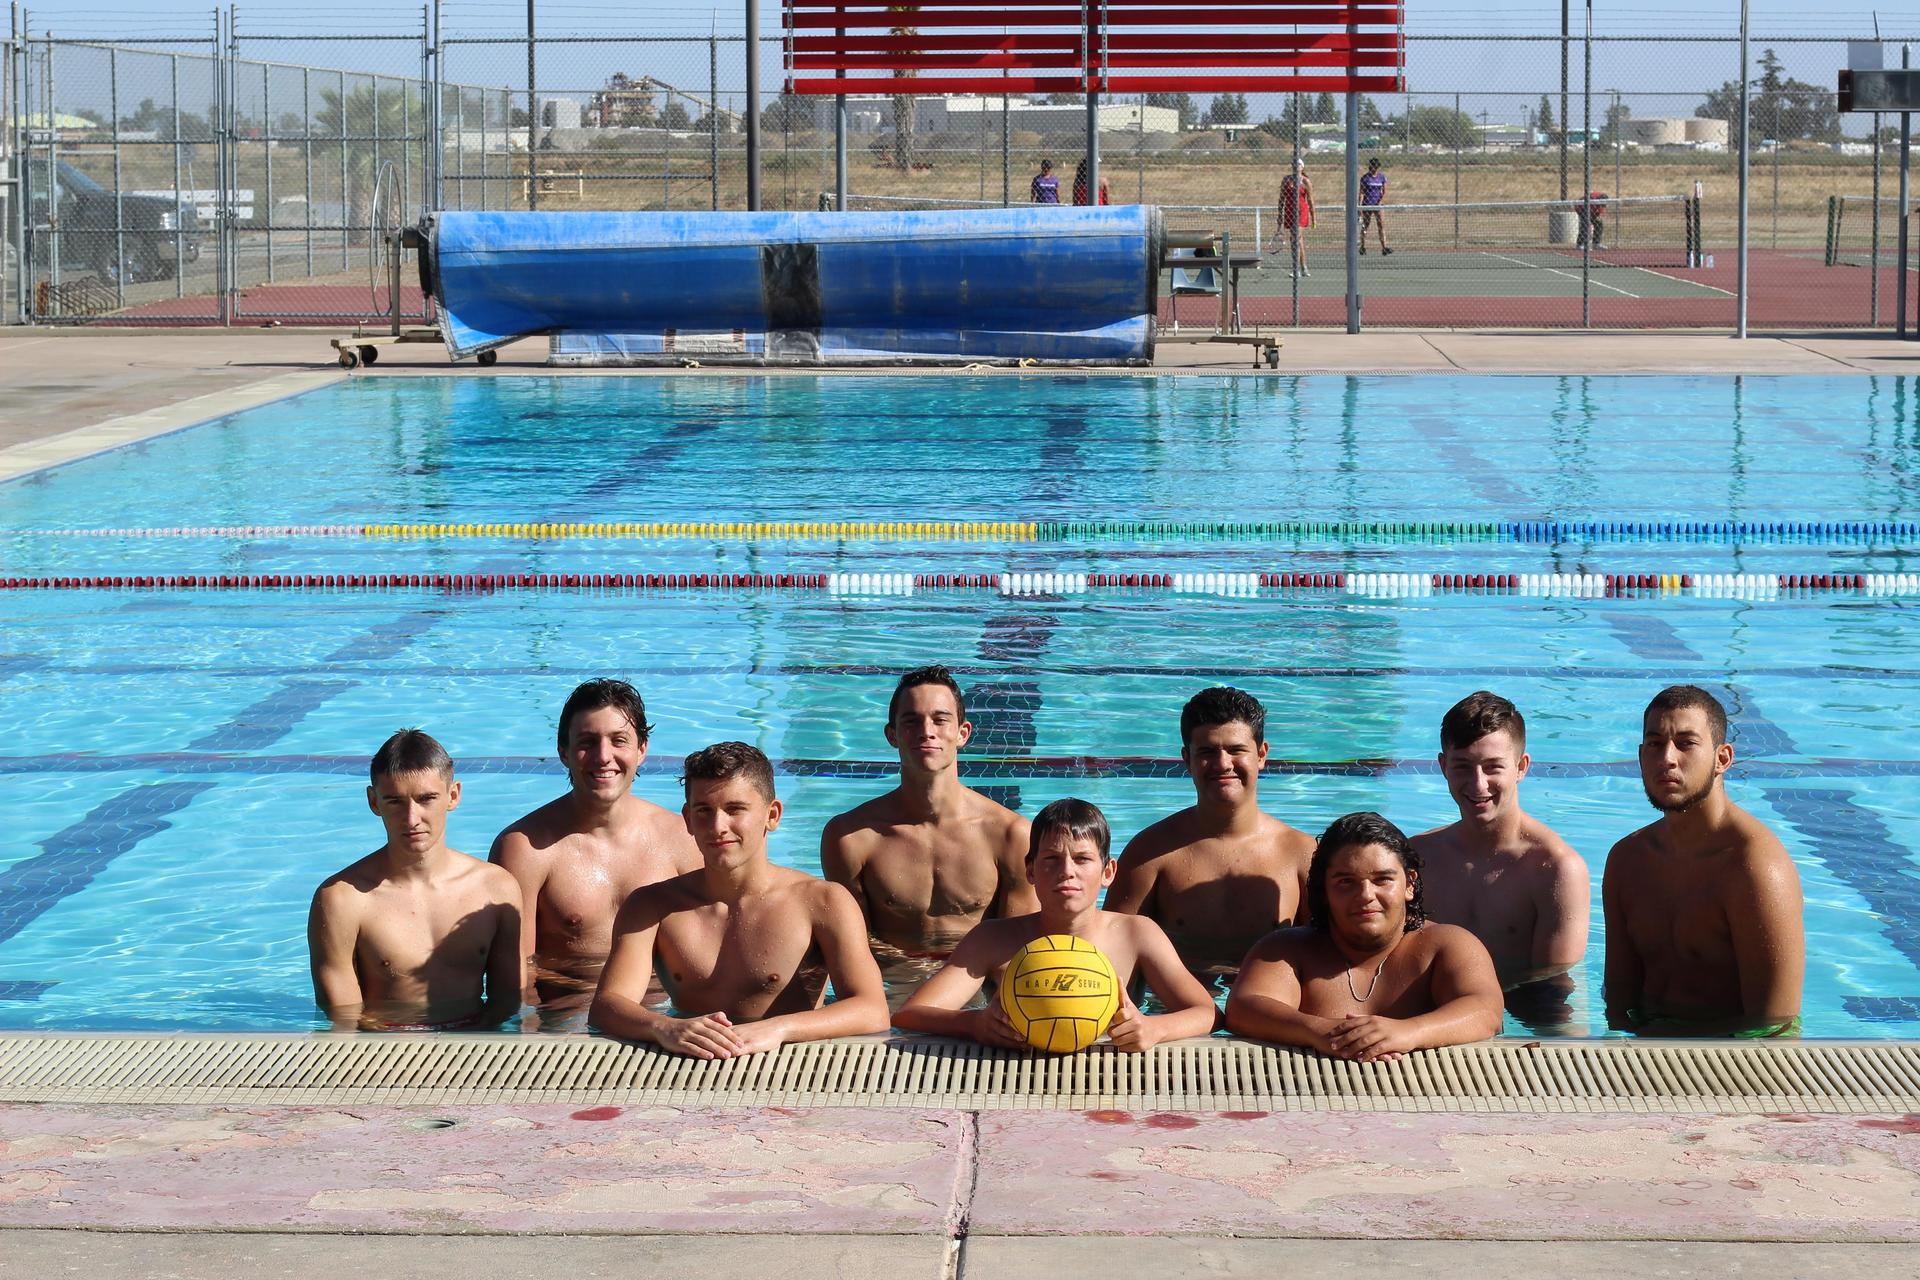 Boys water polo team posing